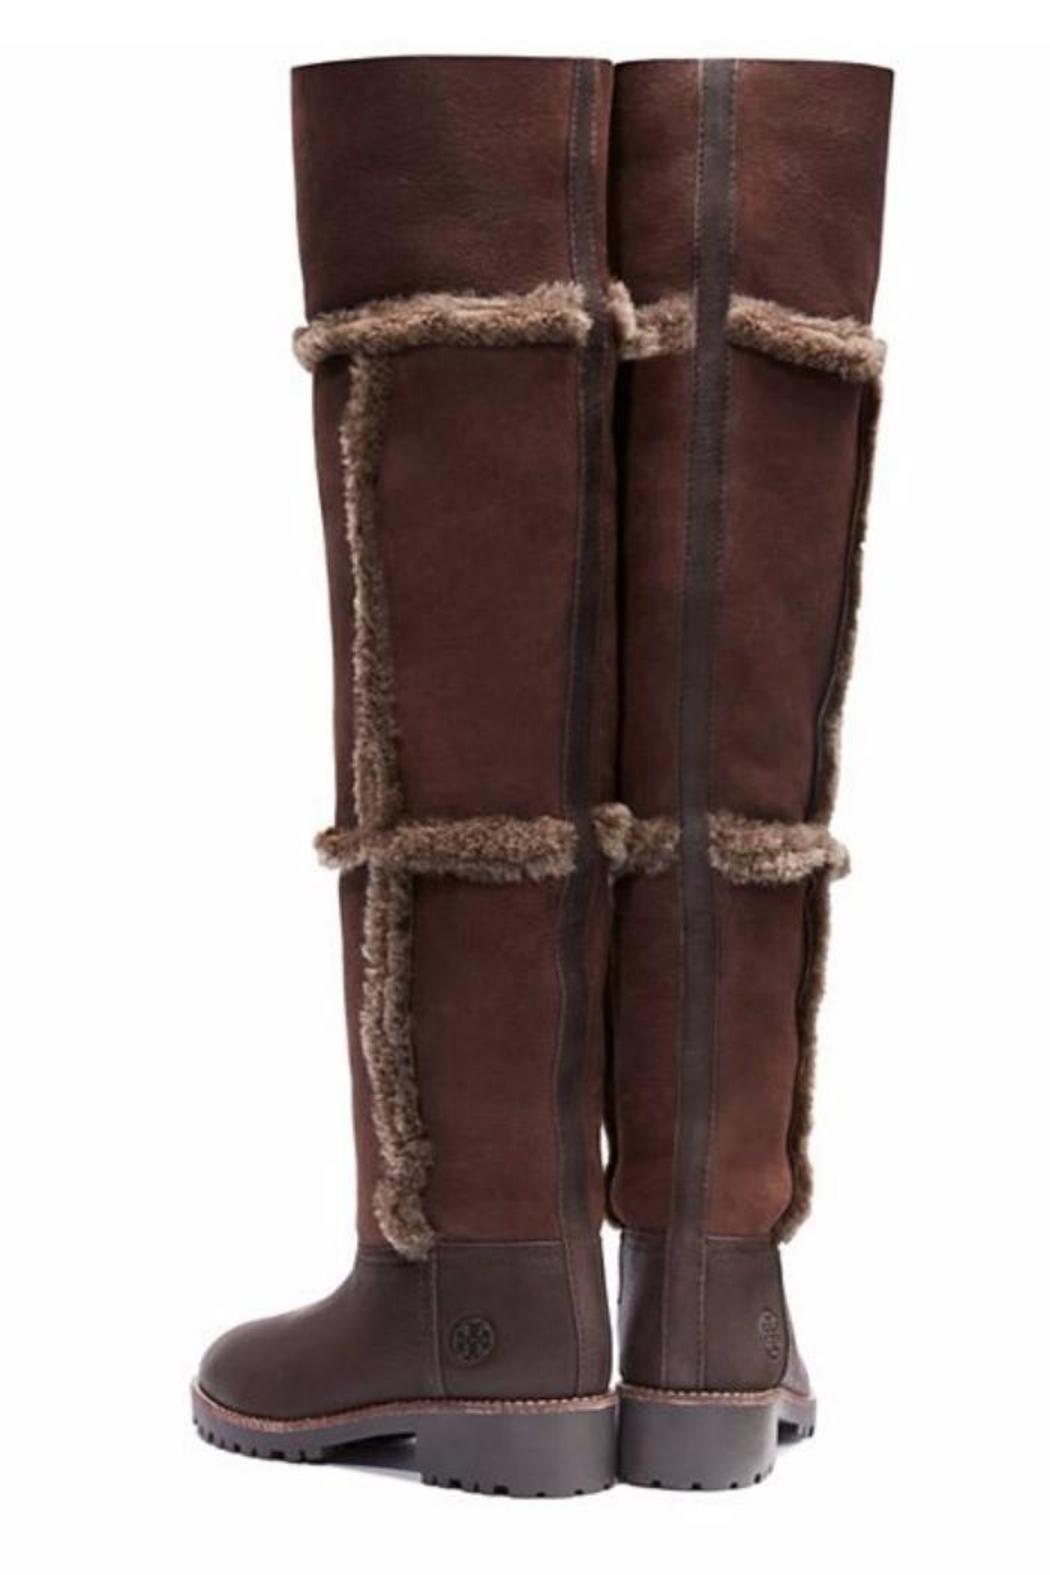 Already Excited For Fall? Check Out These 8 Boots From Nordstrom's Major Sale!